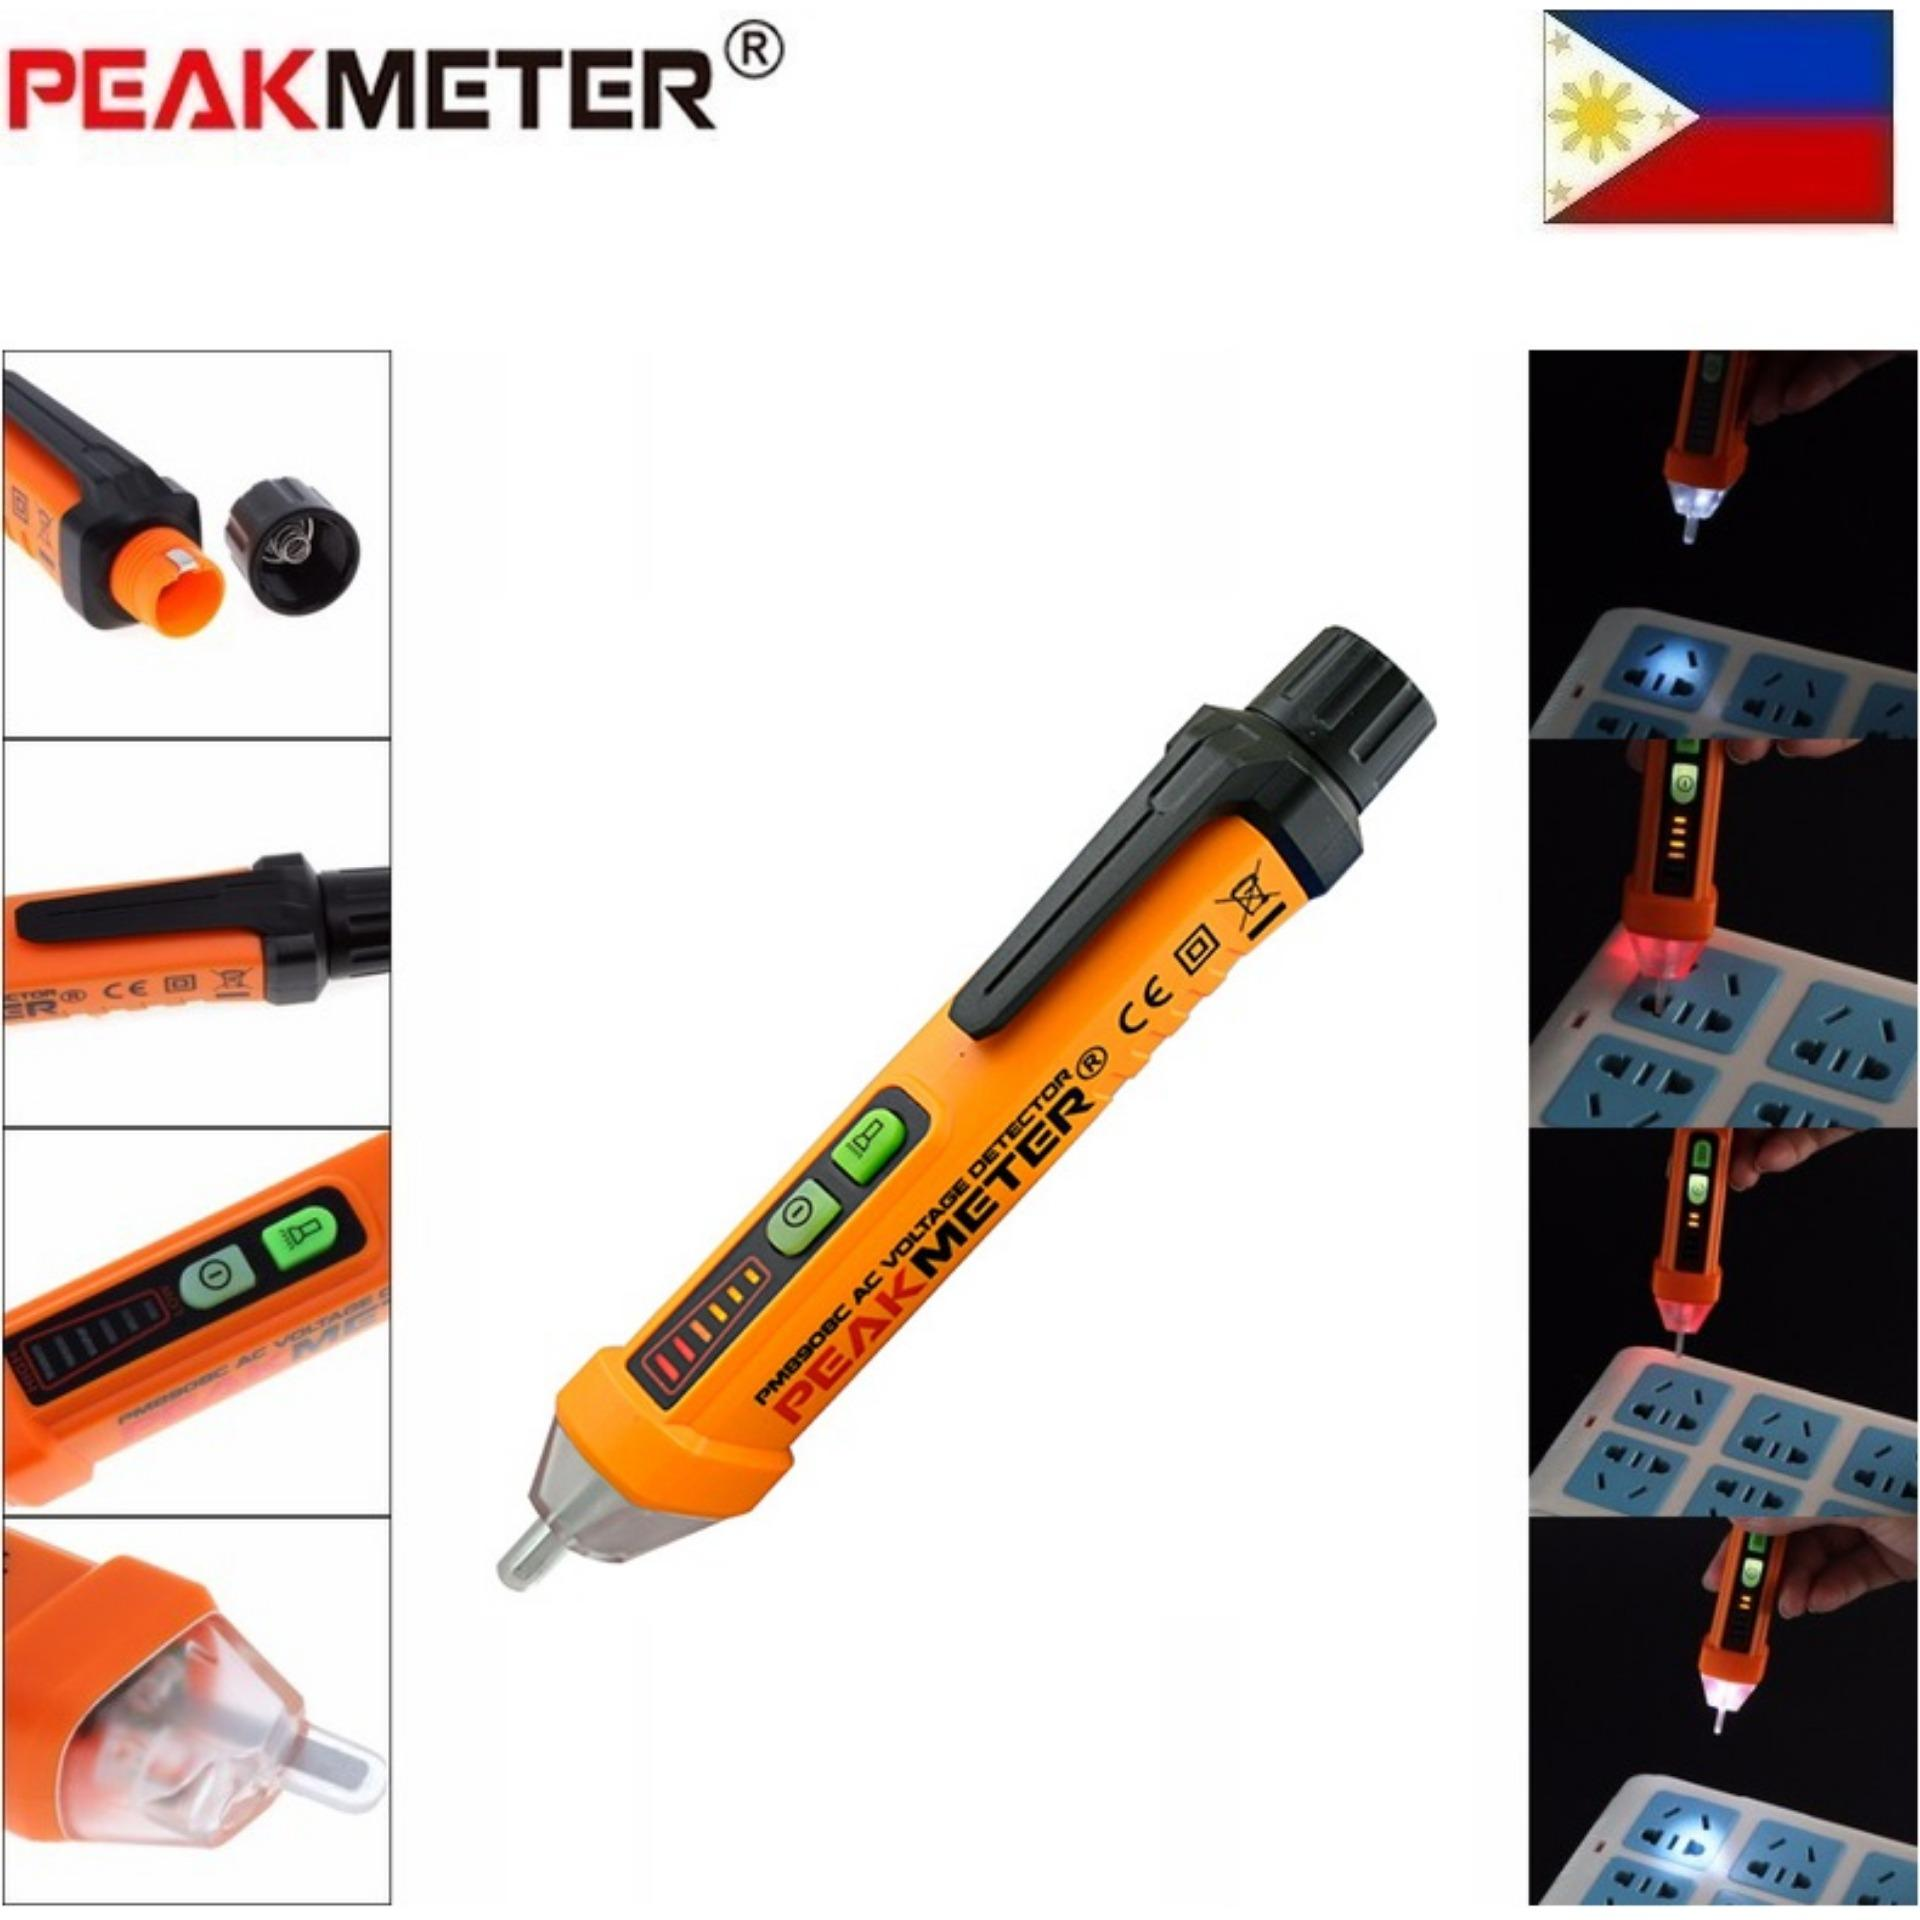 The Price Of Original Fluke 200 1000v Volts Non Contact Sensor Details About Ac Voltage Detector 90v To Electrical Live Circuit Peakmeter Pm8908c Tester Meter 12v Pen Style